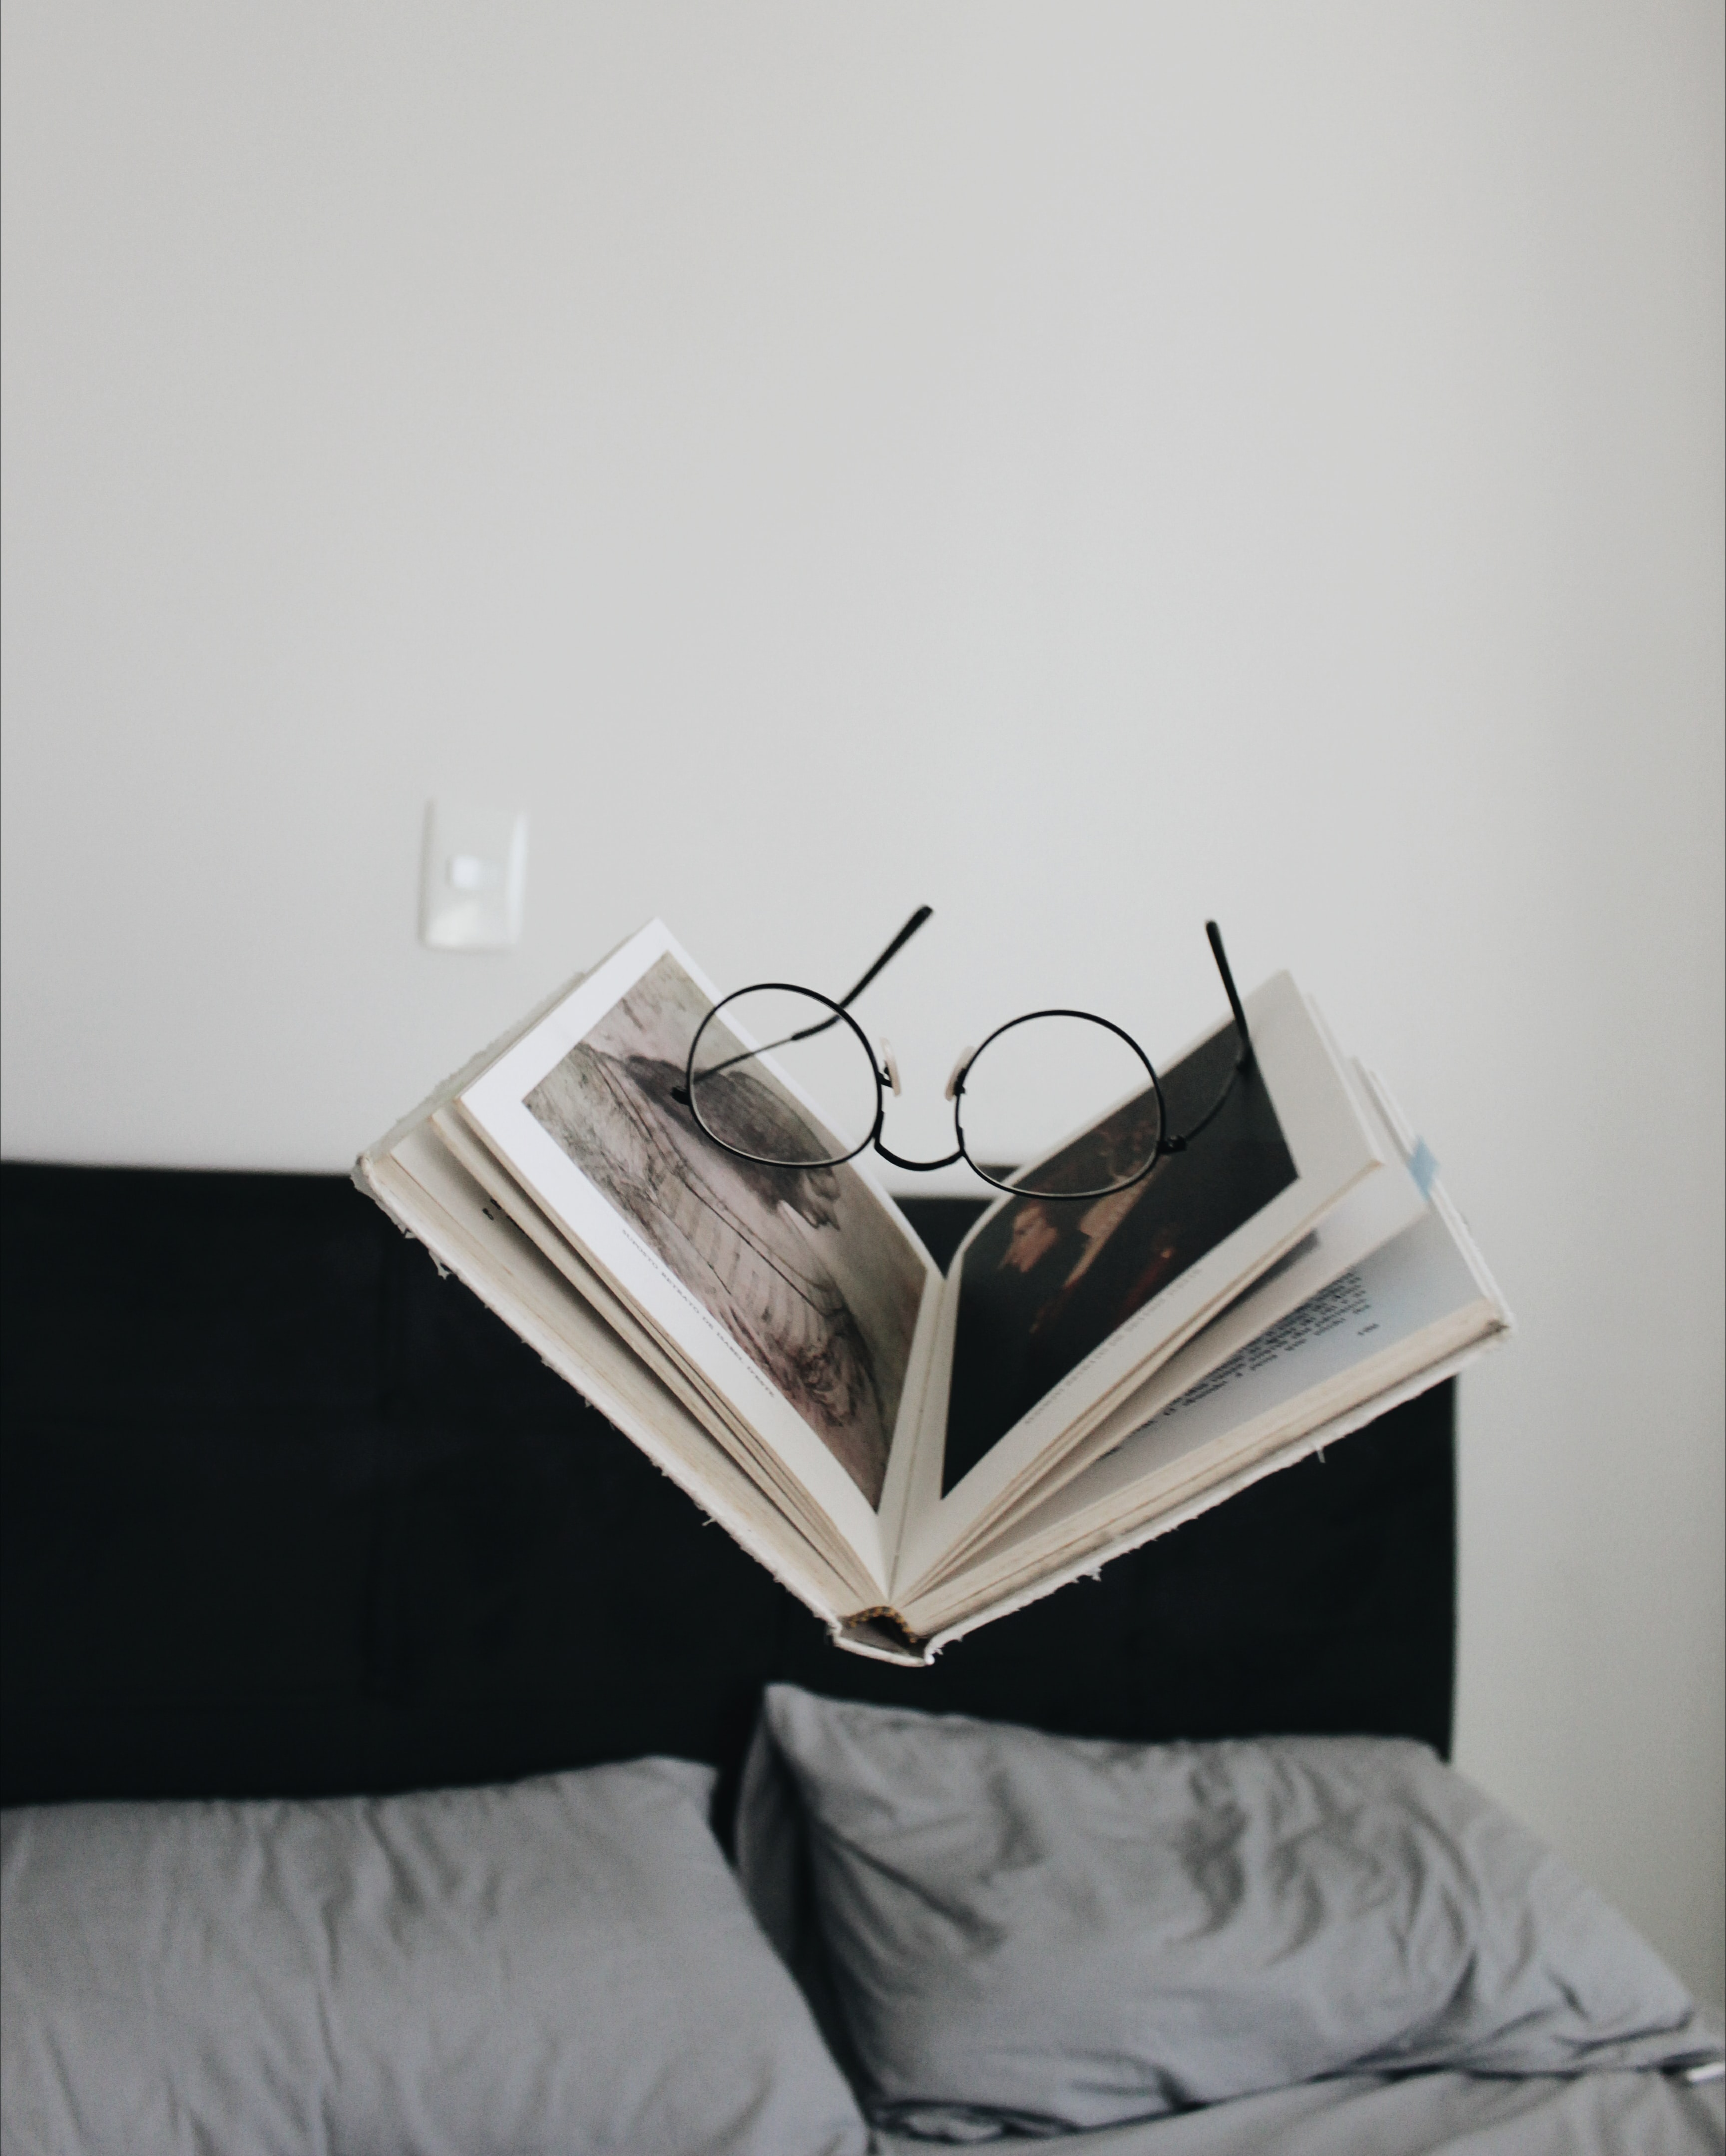 A pair of glasses on a half-open book floating above a double bed